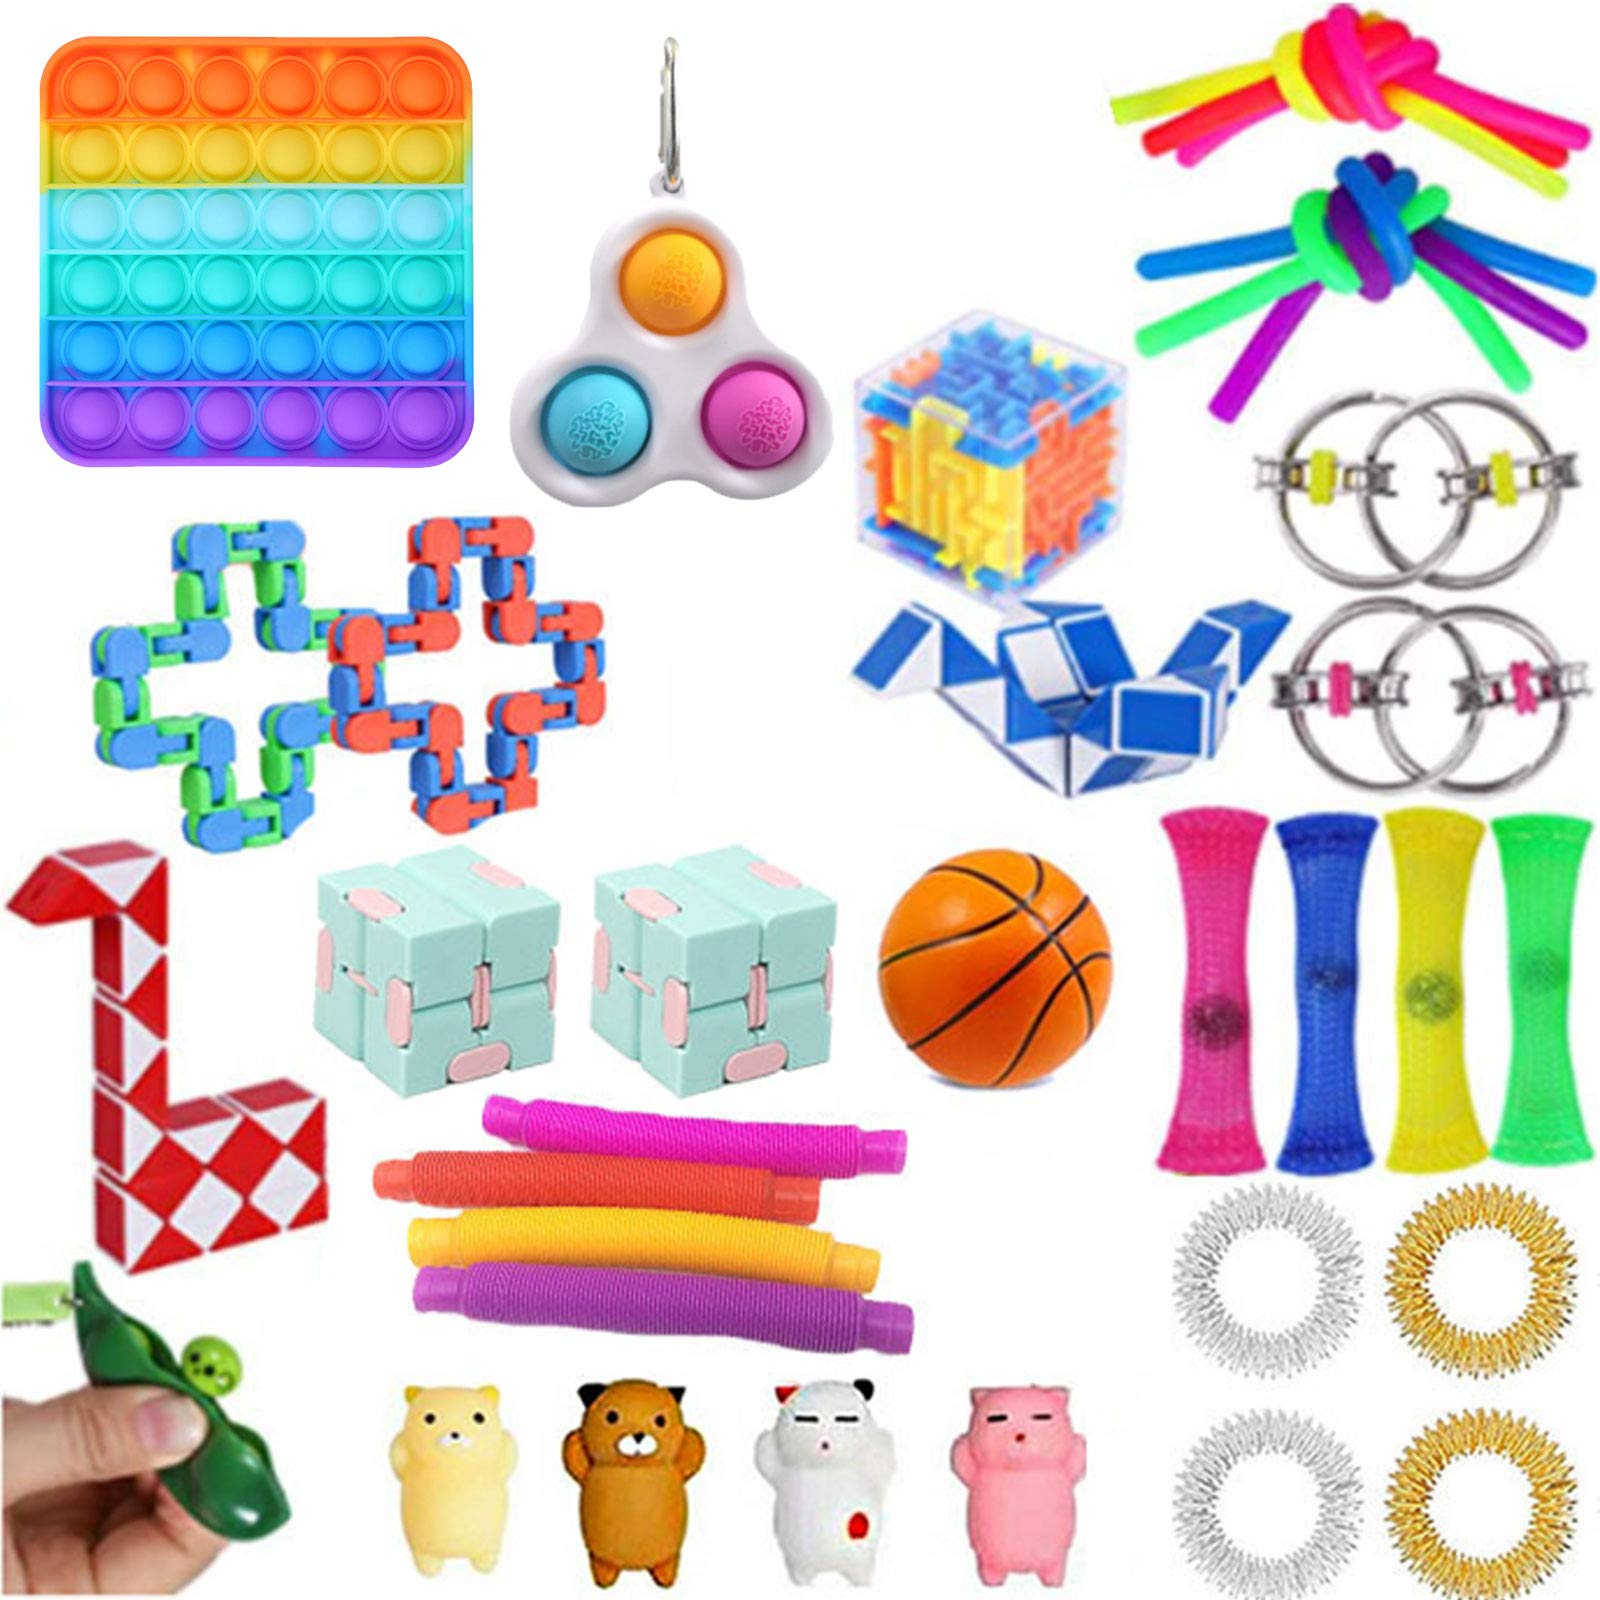 Komoo 31Pcs Fidgets Box, Simple Dimple Fidget Toys, Fidget Toy Packs Cheap, Decompression Keychain Toy, Push Pop Bubble Sensory Toy for Kids and Adults (B)